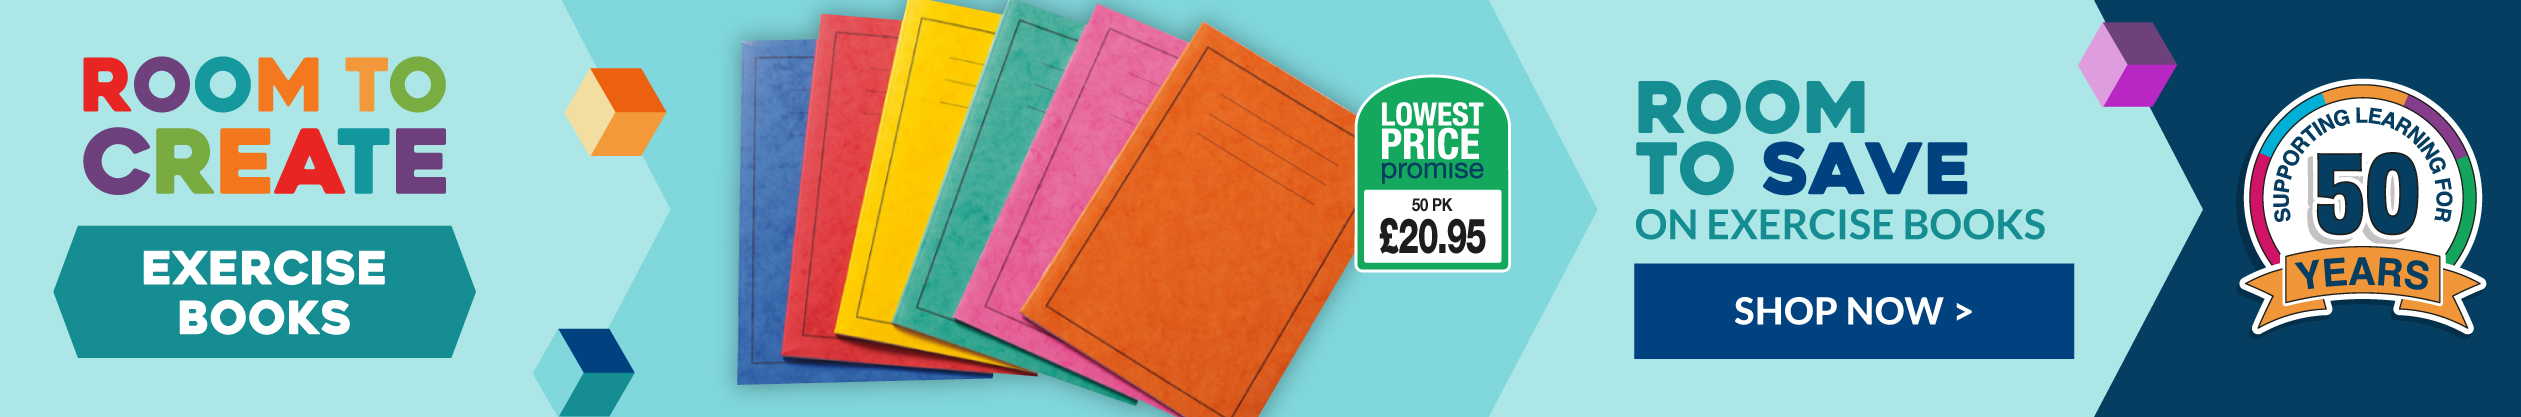 Everyday Everything low prices on Exercise Books. Shop Now.